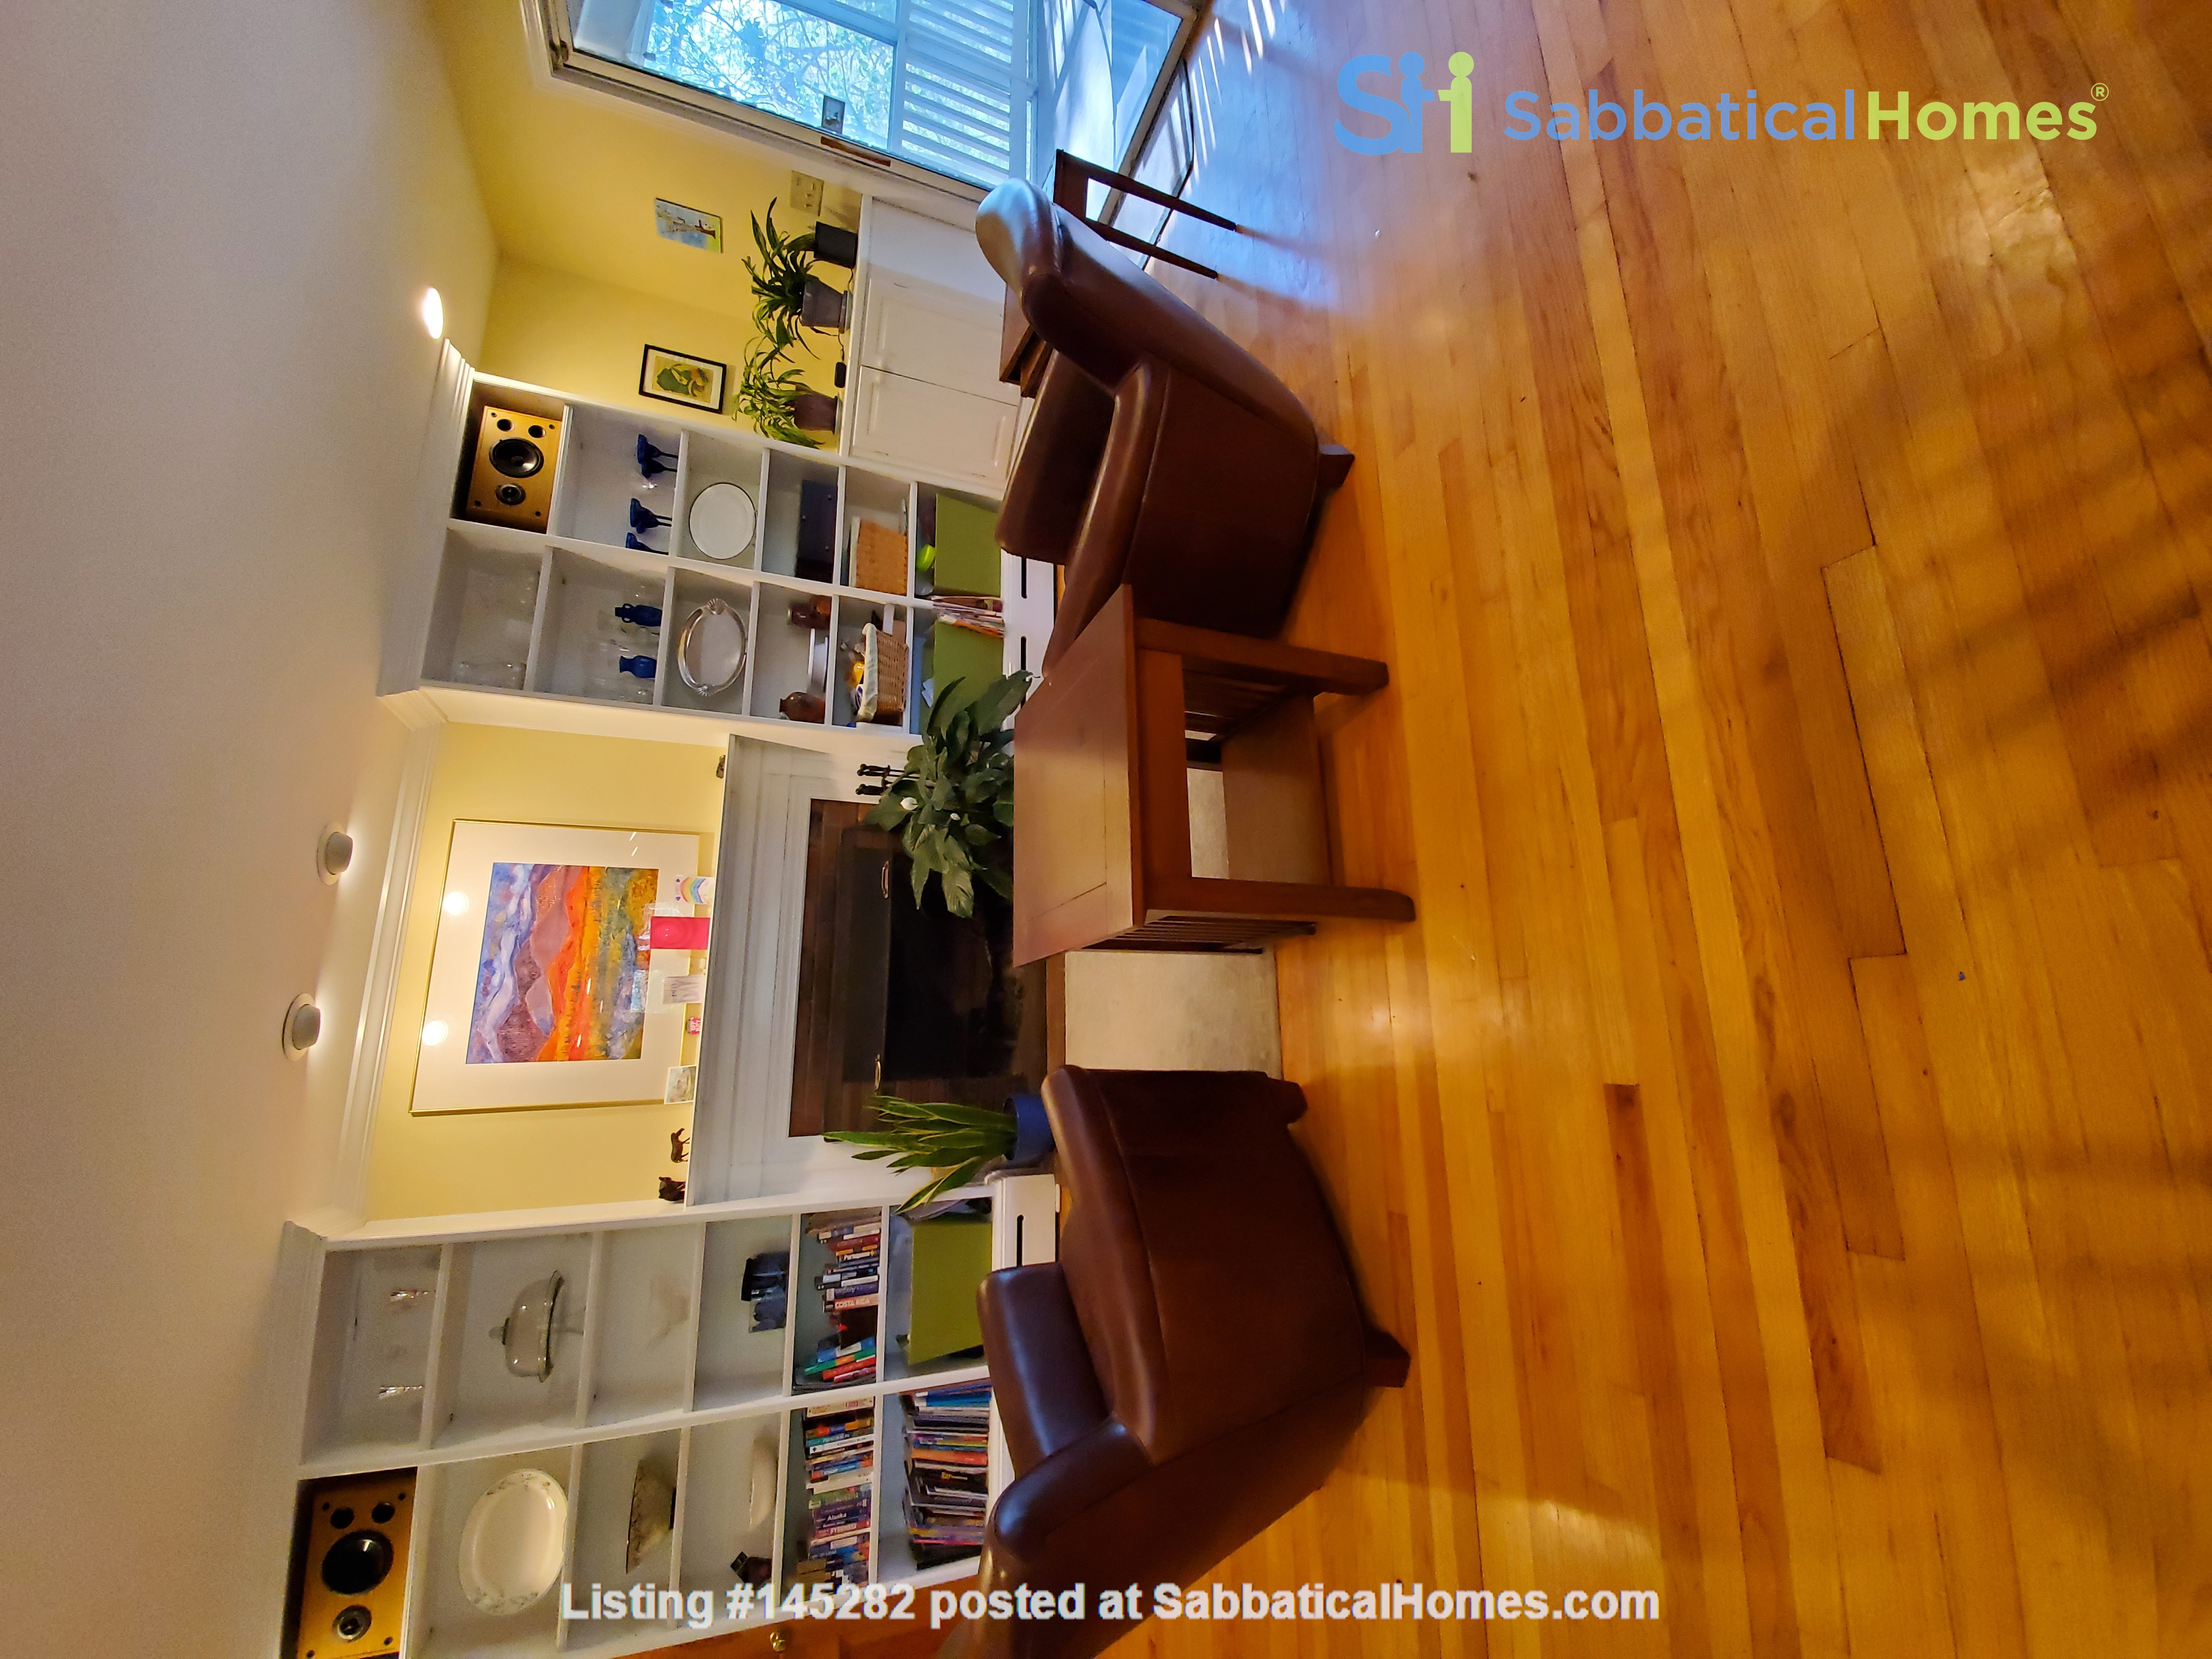 Spacious, Peaceful Getaway in Beautiful Amherst, MA, 4 BR 3.5 ba Home Rental in Amherst, Massachusetts, United States 6